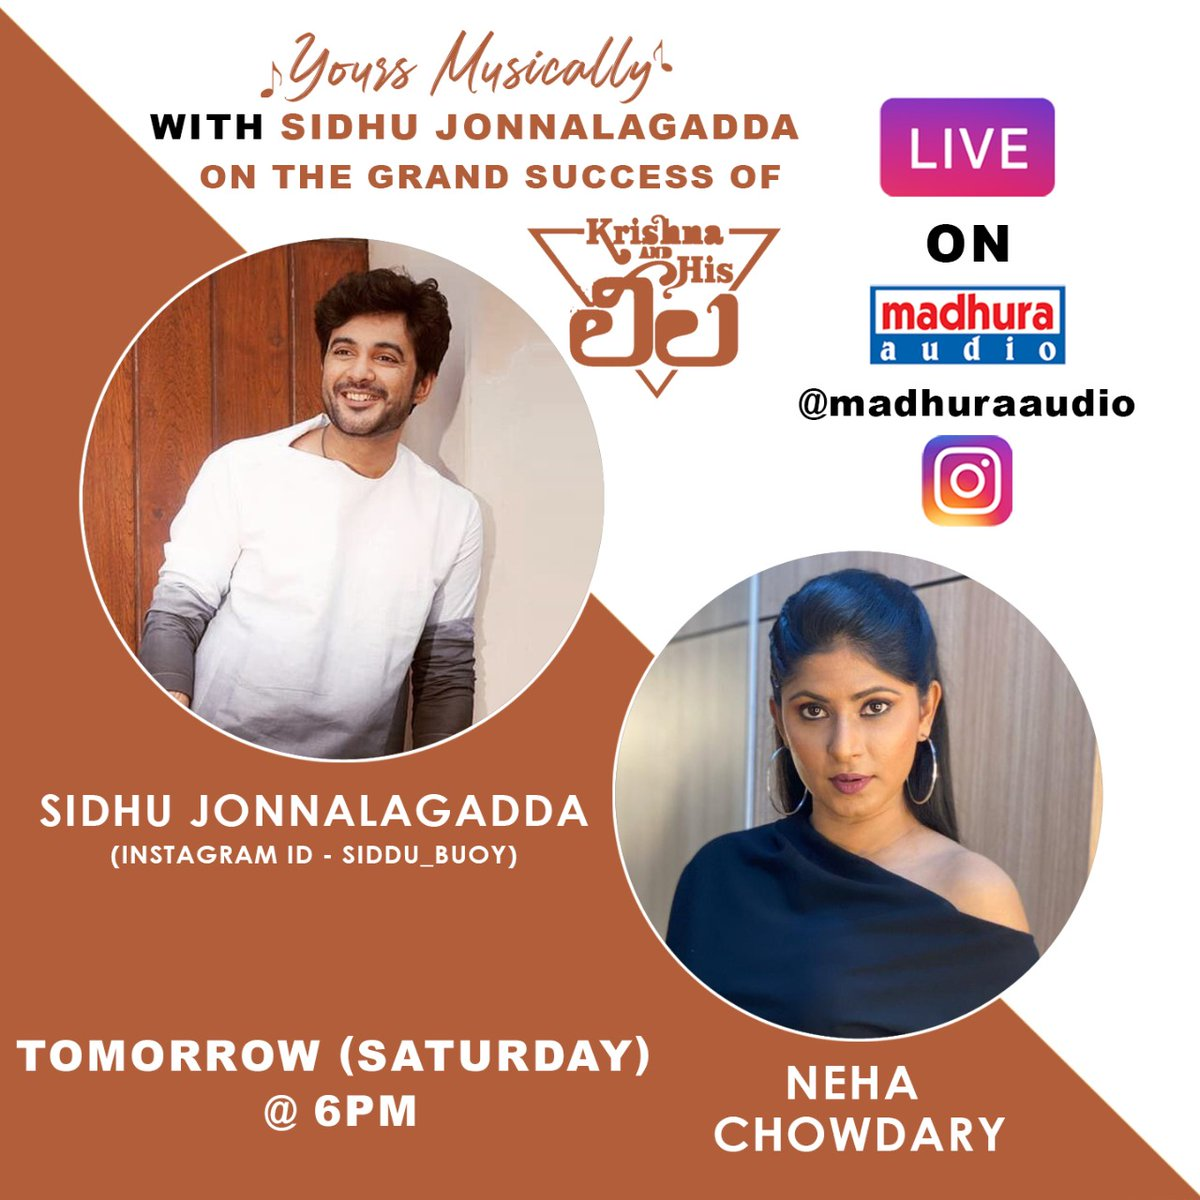 Wooahh Look Here @Siddu_buoy Is Joining With Us In Live Tomorrow At 6 PM With Anchor @thenehachowdary Stay Tuned To @MadhuraAudio Insta Live  #YoursMusically #TeluguMusic #telugumusically #TeluguIndependentMusic #originalmusic #telugumusic #telugumusicalworld #madhuraaudiopic.twitter.com/uggX3xKLAd